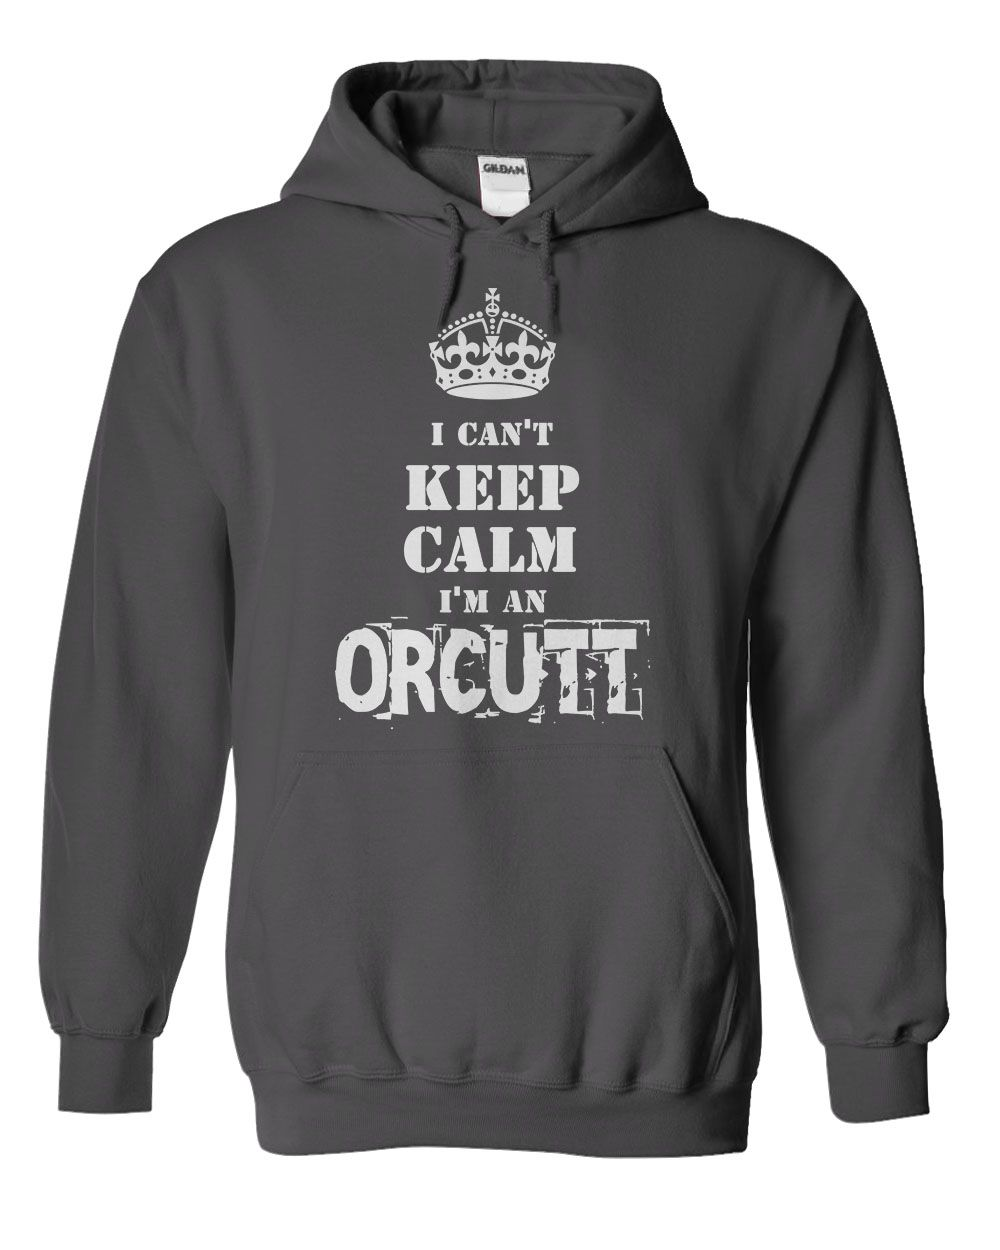 For this hoodie visit